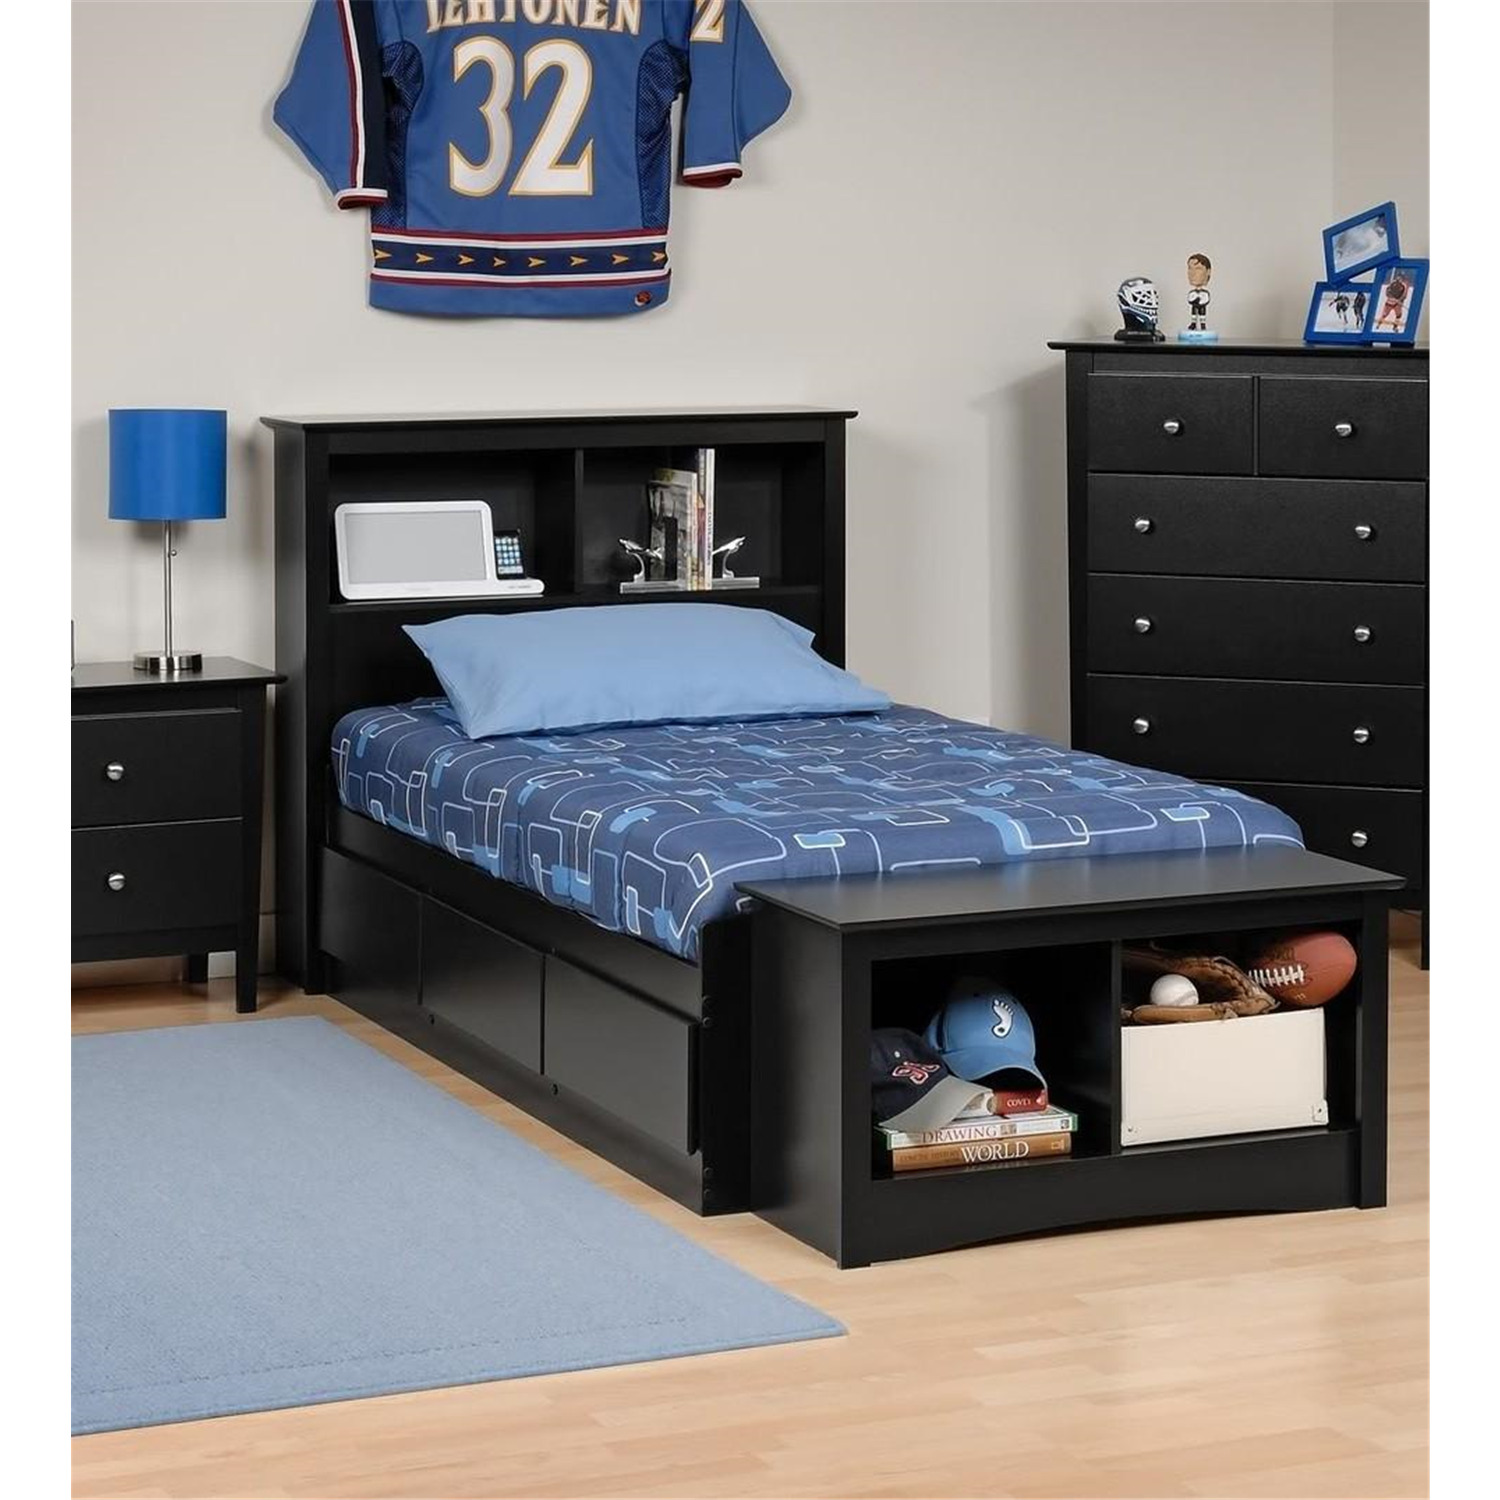 Bedding Storage Platform Storage Bed W Bookcase Headboard Black Twin